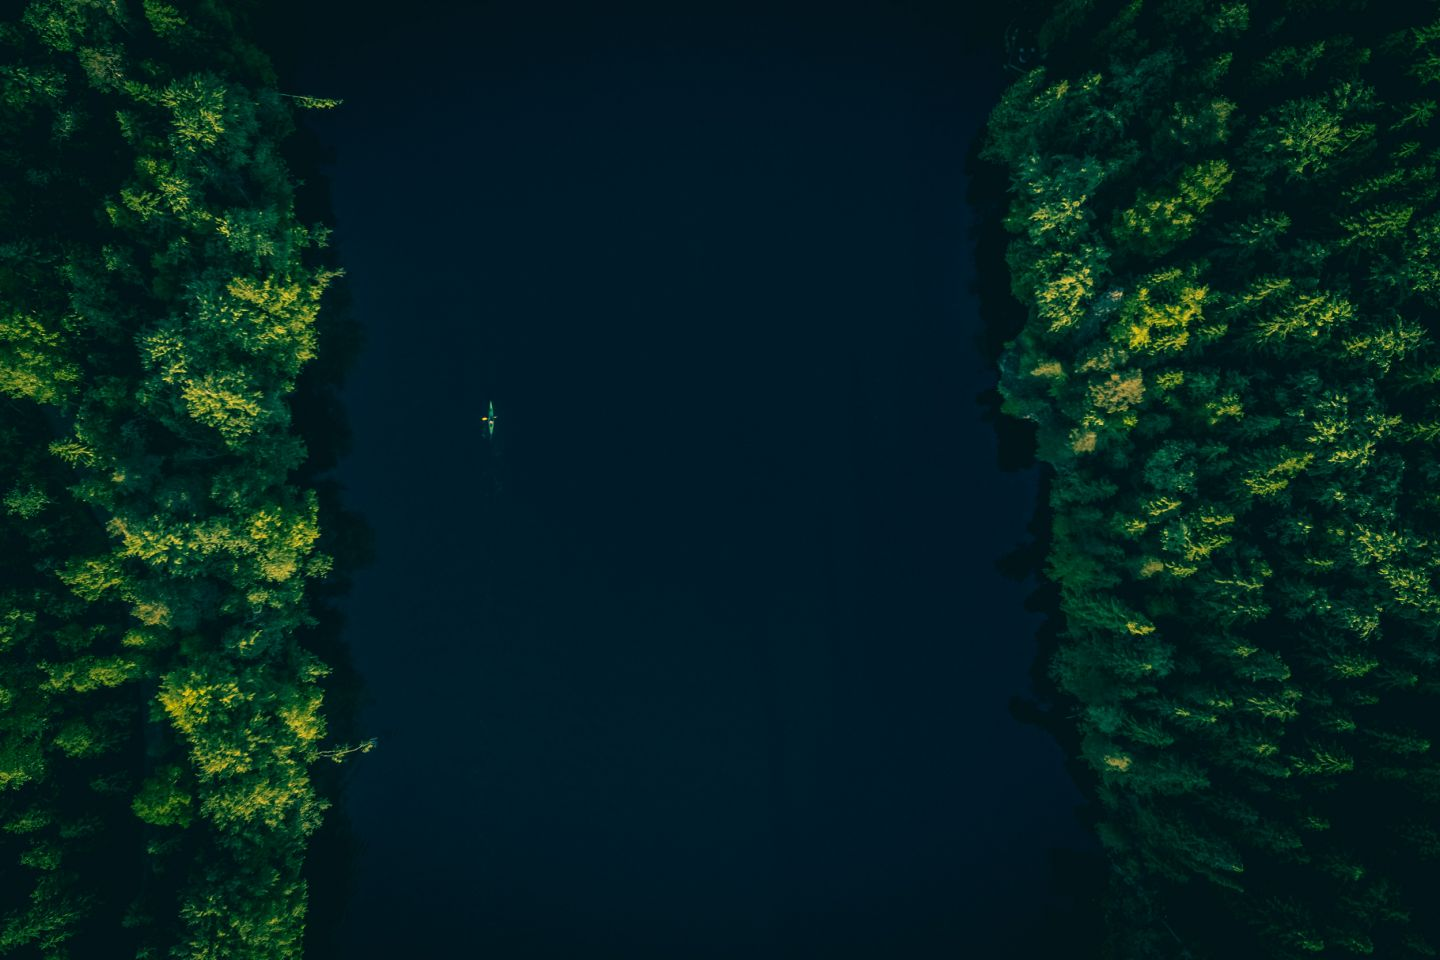 A canoe glides along a dark river in Finnish Lapland